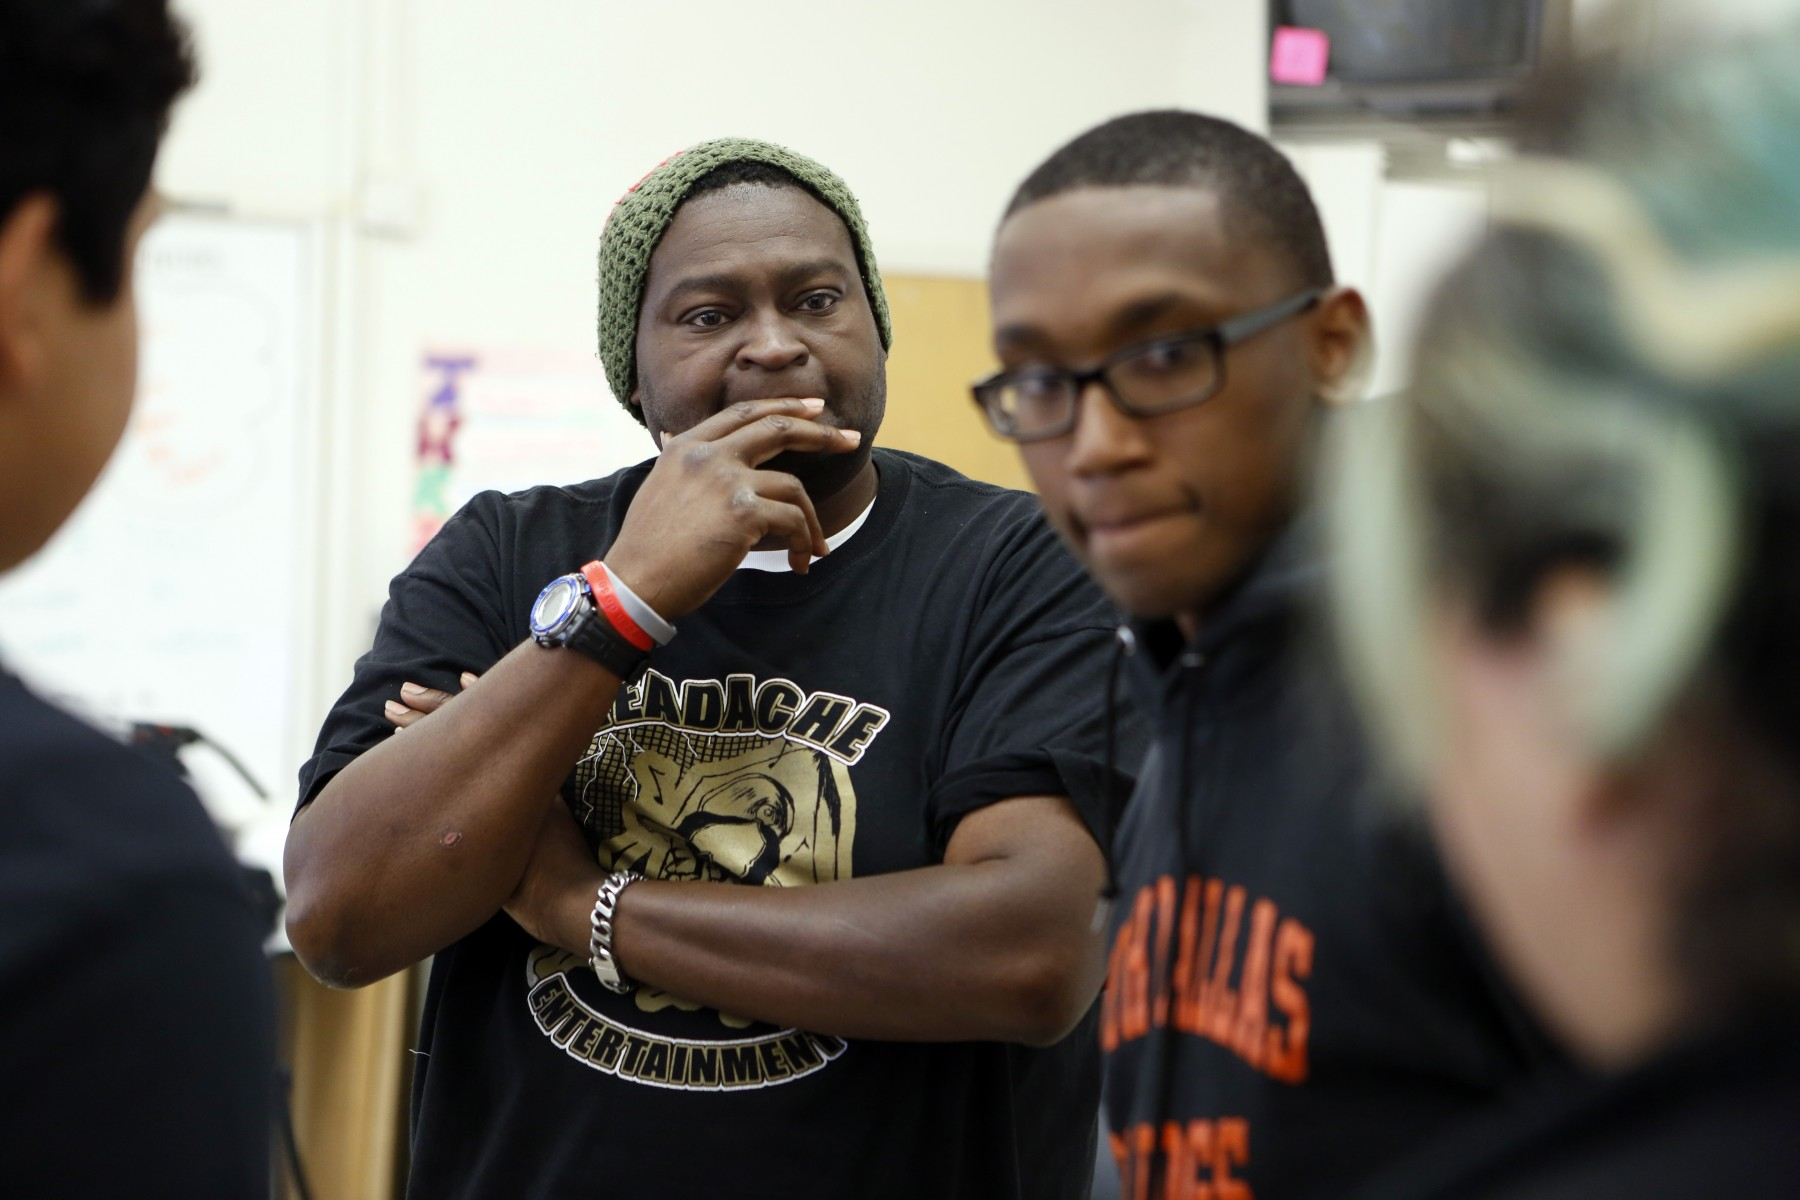 Charles 'CJ' Johnson, left, and Desmond Davis, a student who is currently living with him, talk to other Action Team volunteers during an Action Team meeting at North Dallas High School. Photo/Lara Solt